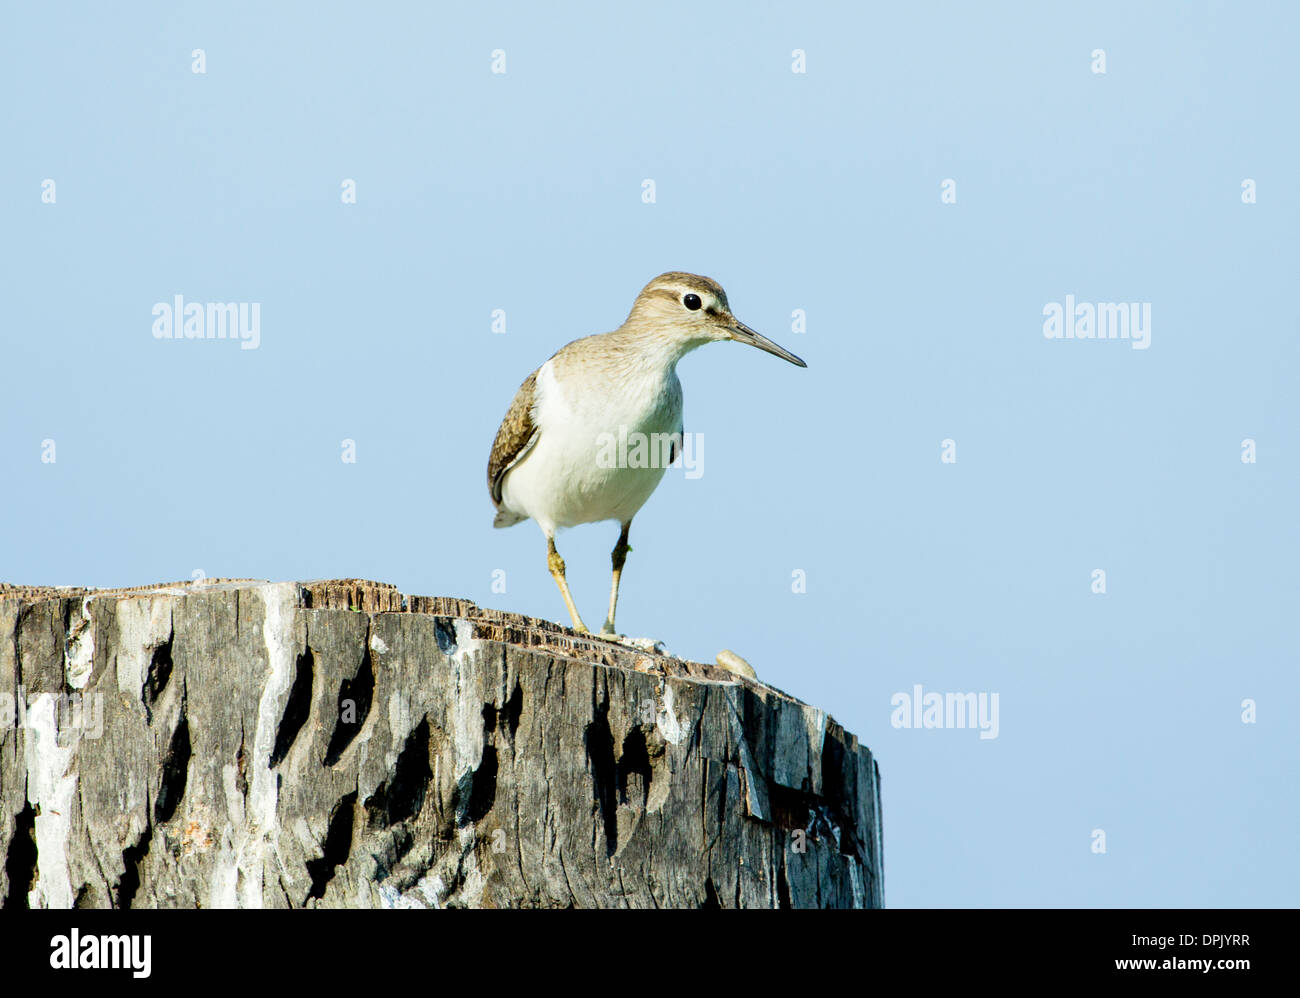 A Cape Wag Tail Bird standing on the edge of a dead tree wooden log, india - Stock Image